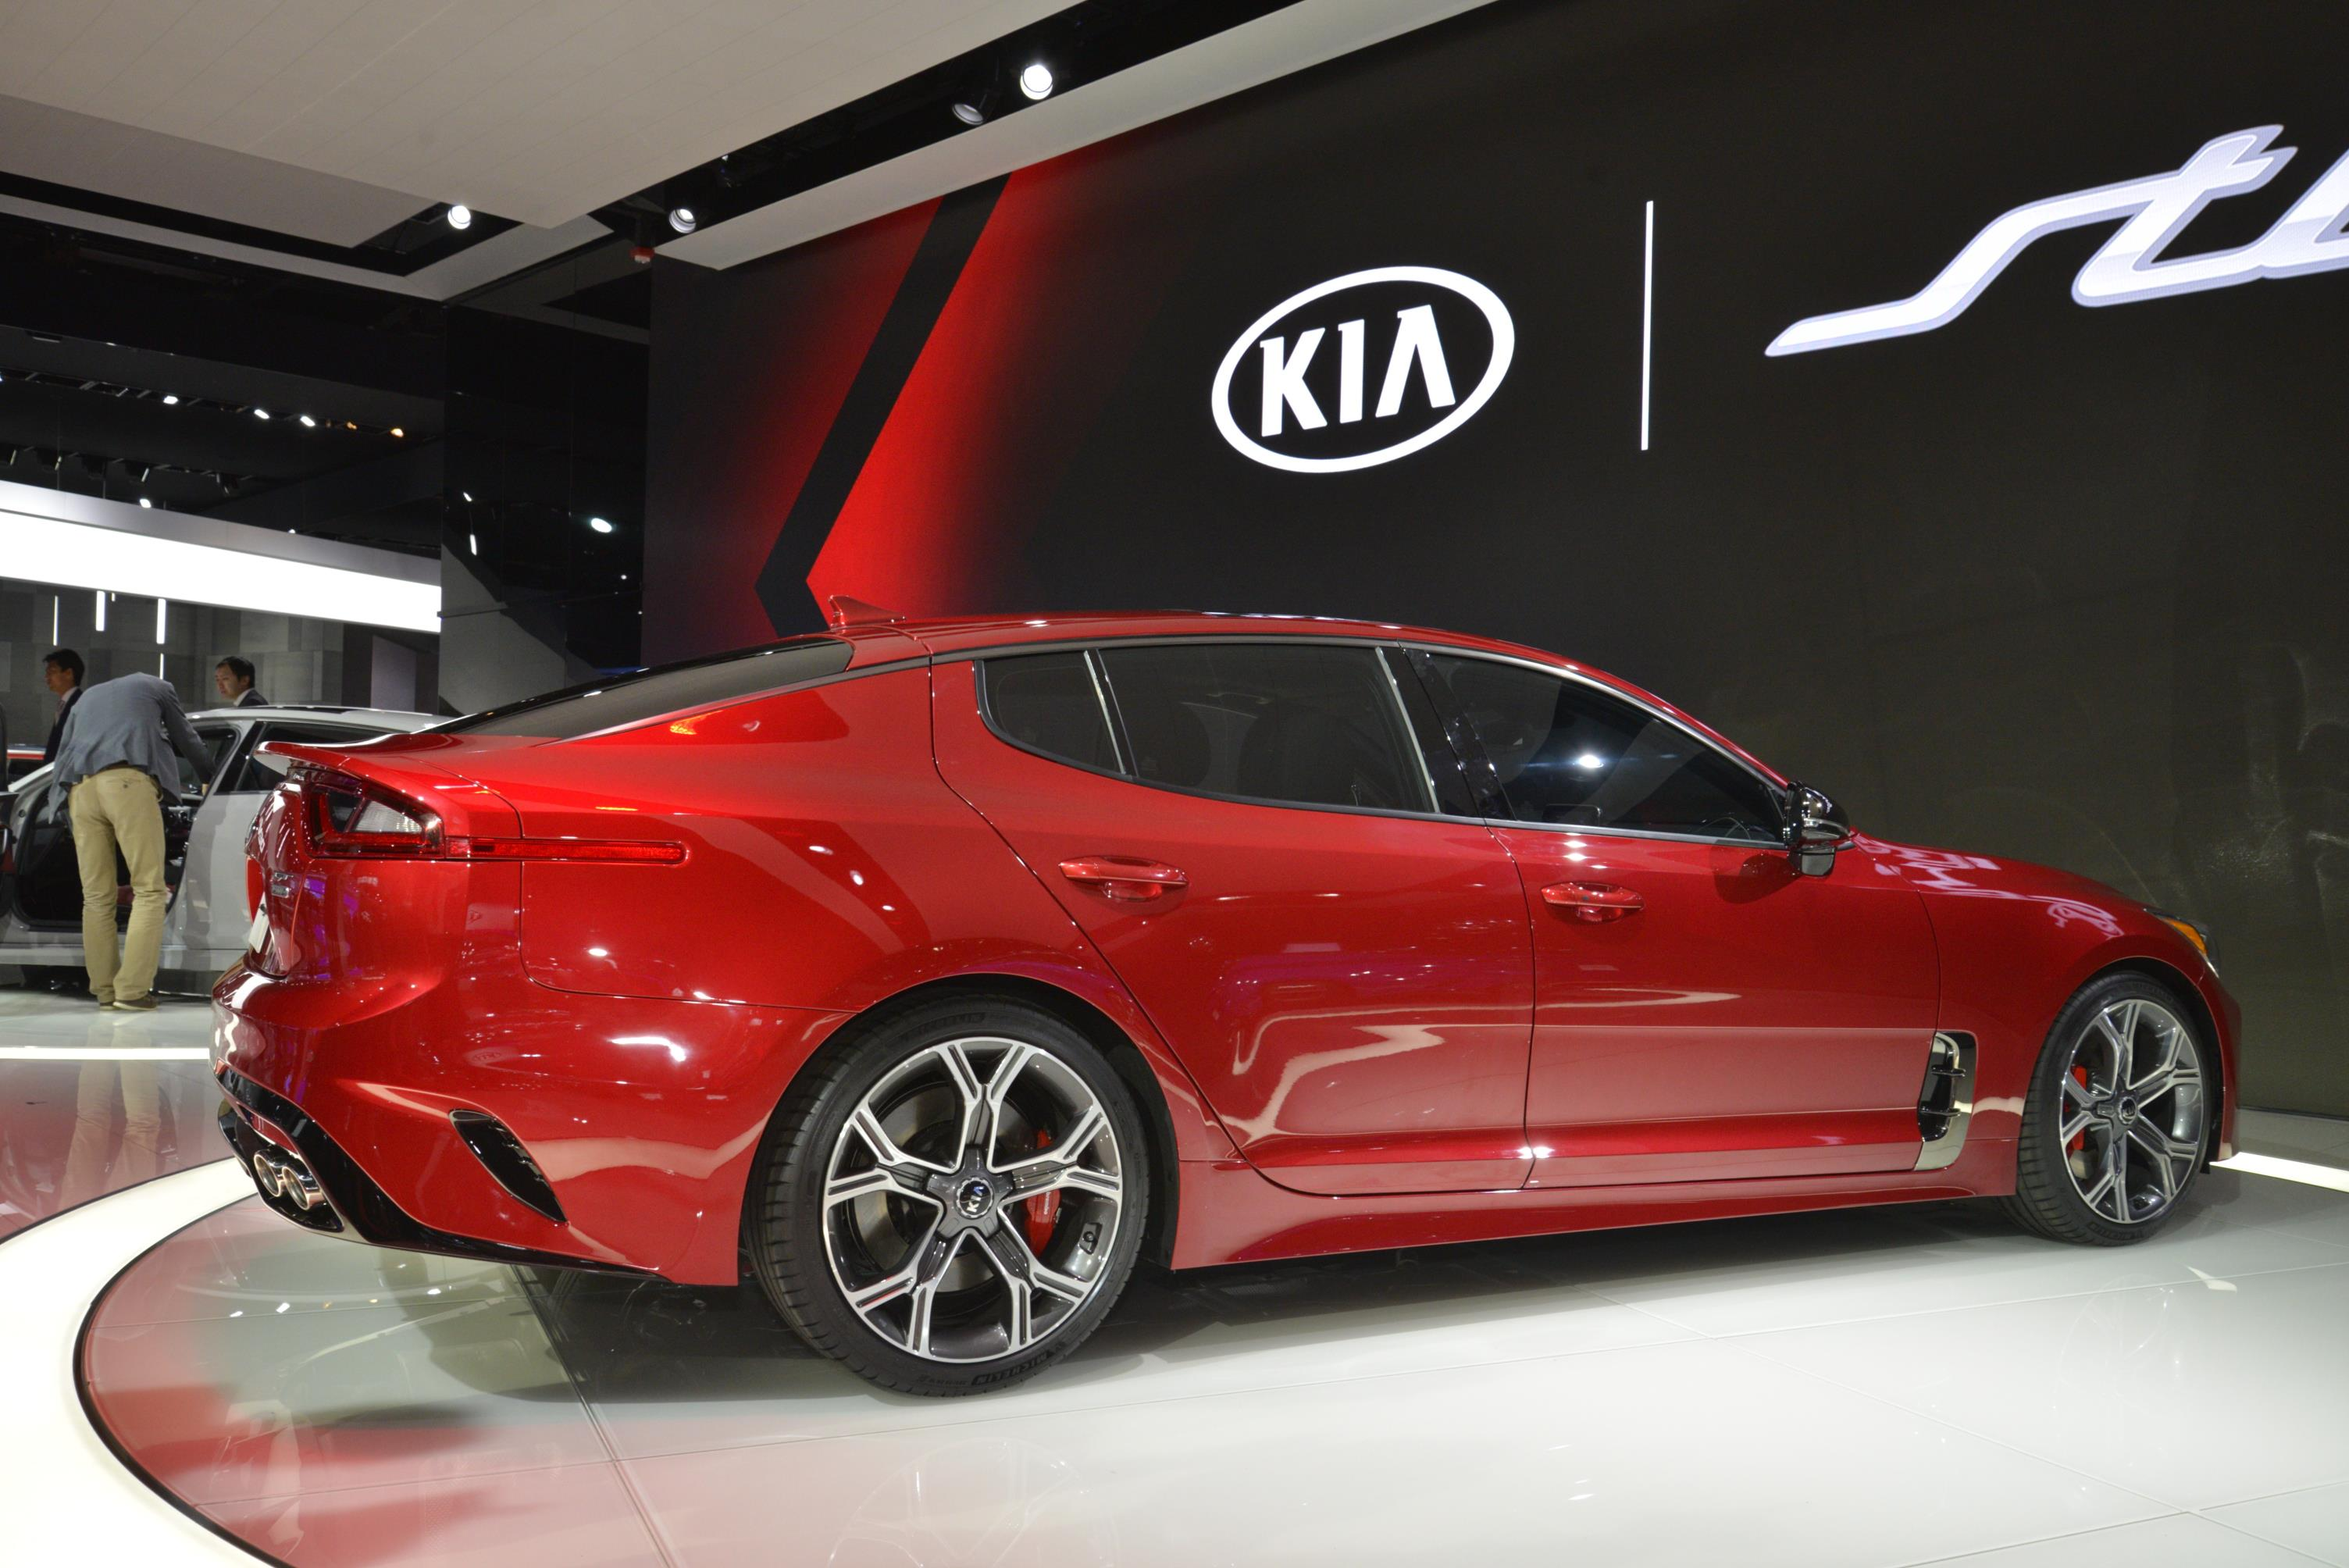 2018 Kia Stinger Looks Like A Porsche Panamera In Nardo